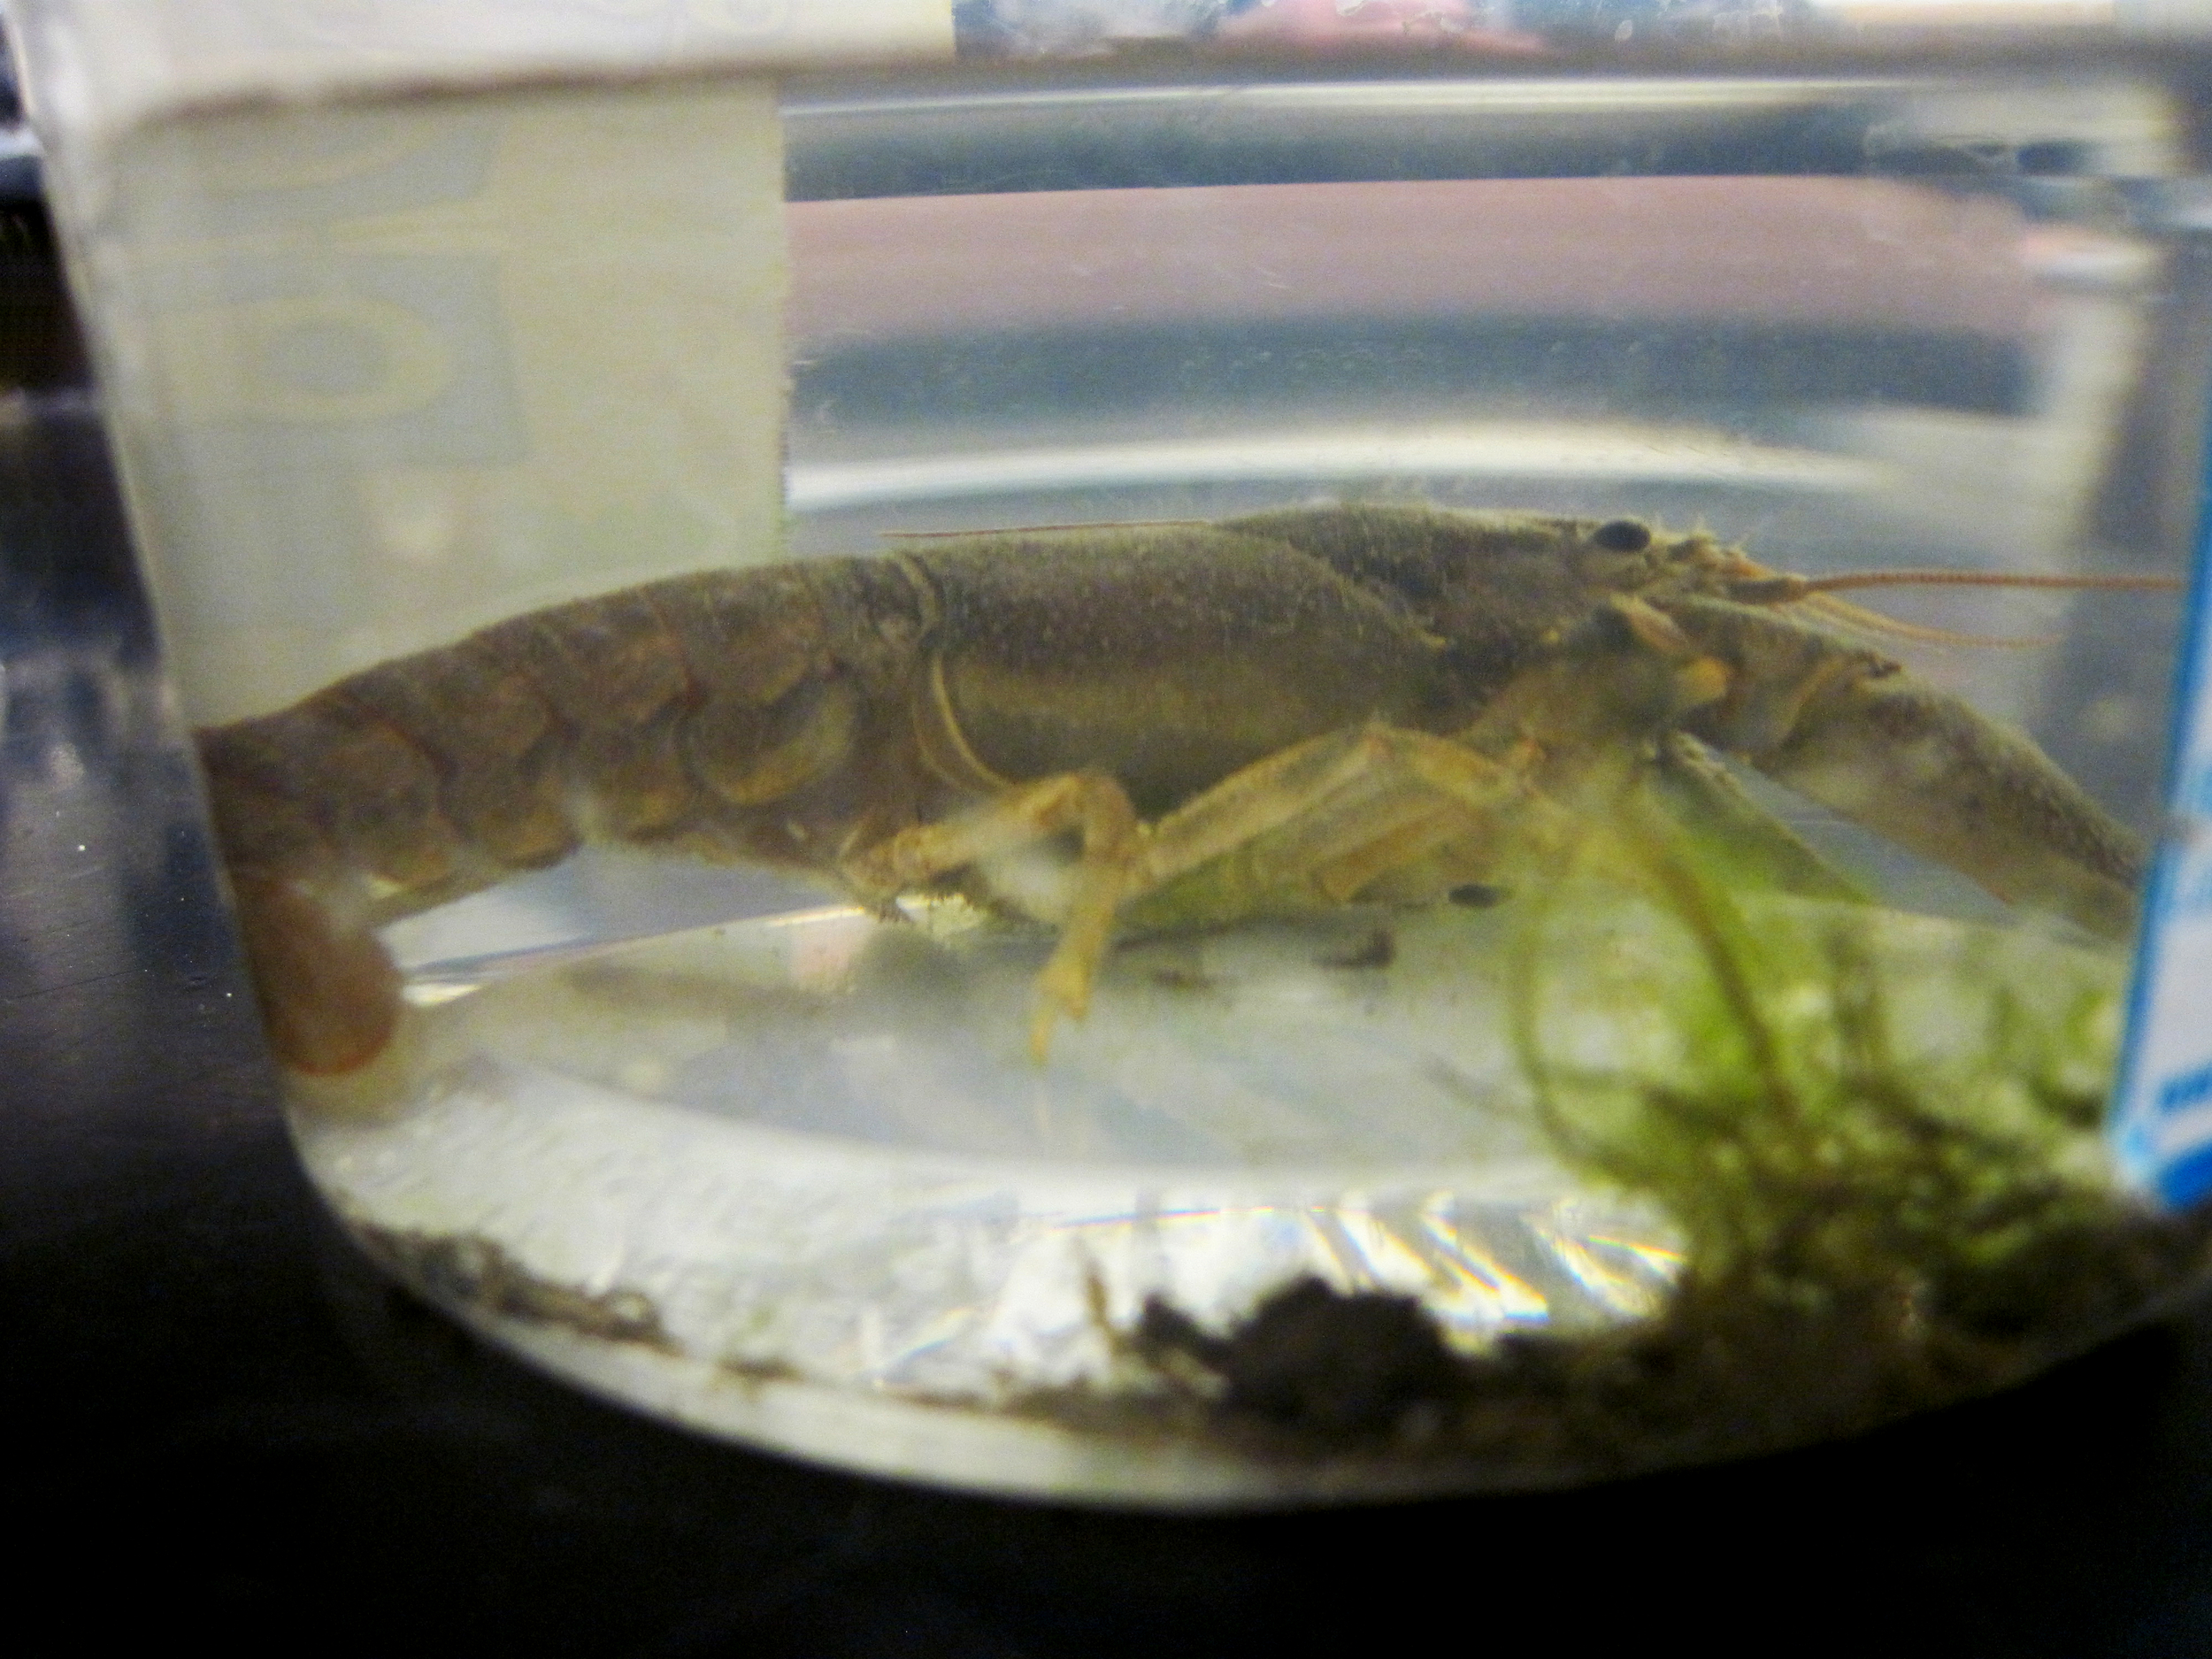 Crayfish to be examined for worms - Maine